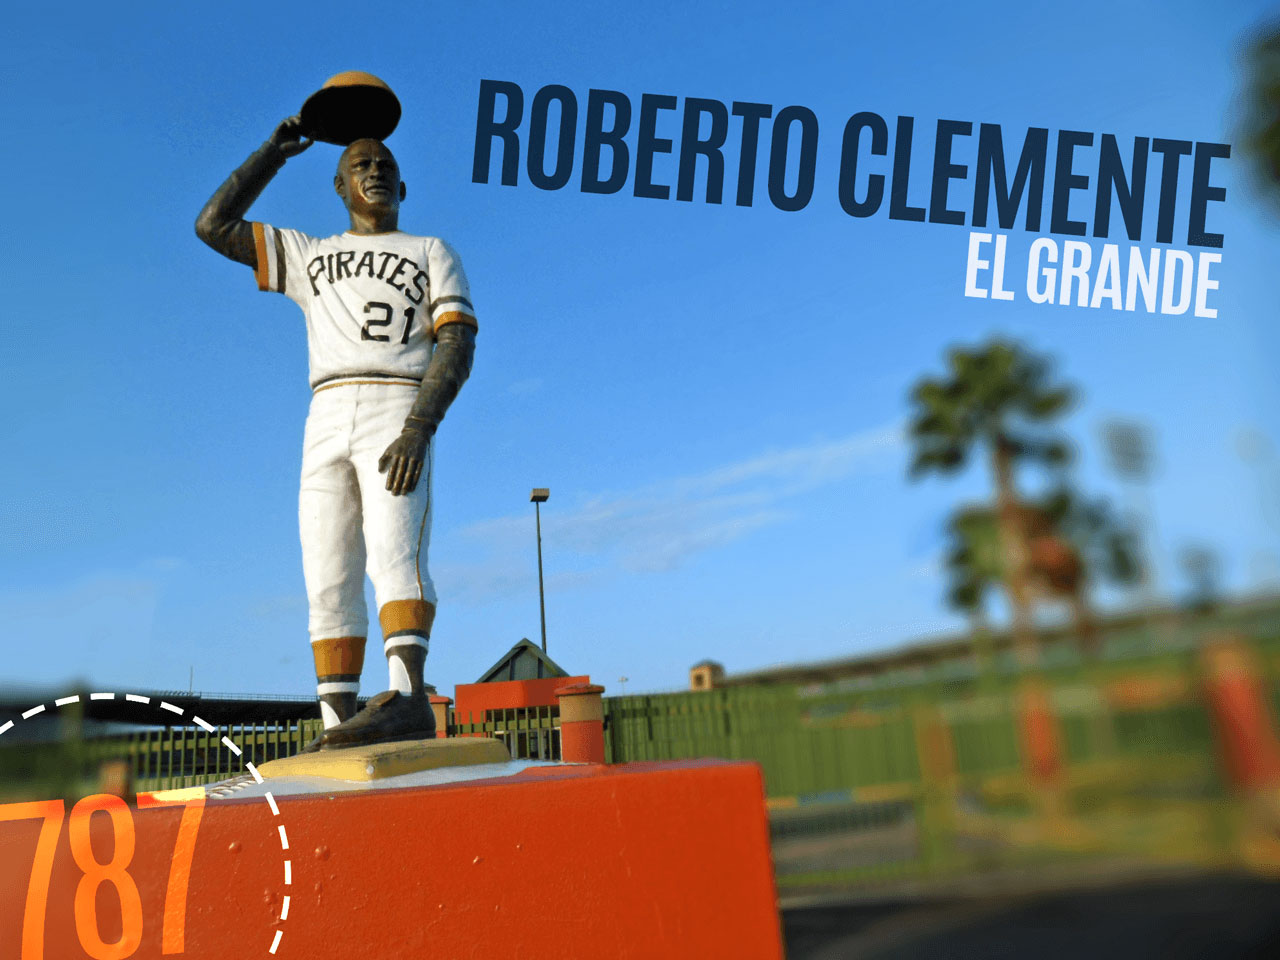 Estatua frente al Estadio Roberto Clemente Walker en Carolina, Puerto Rico.